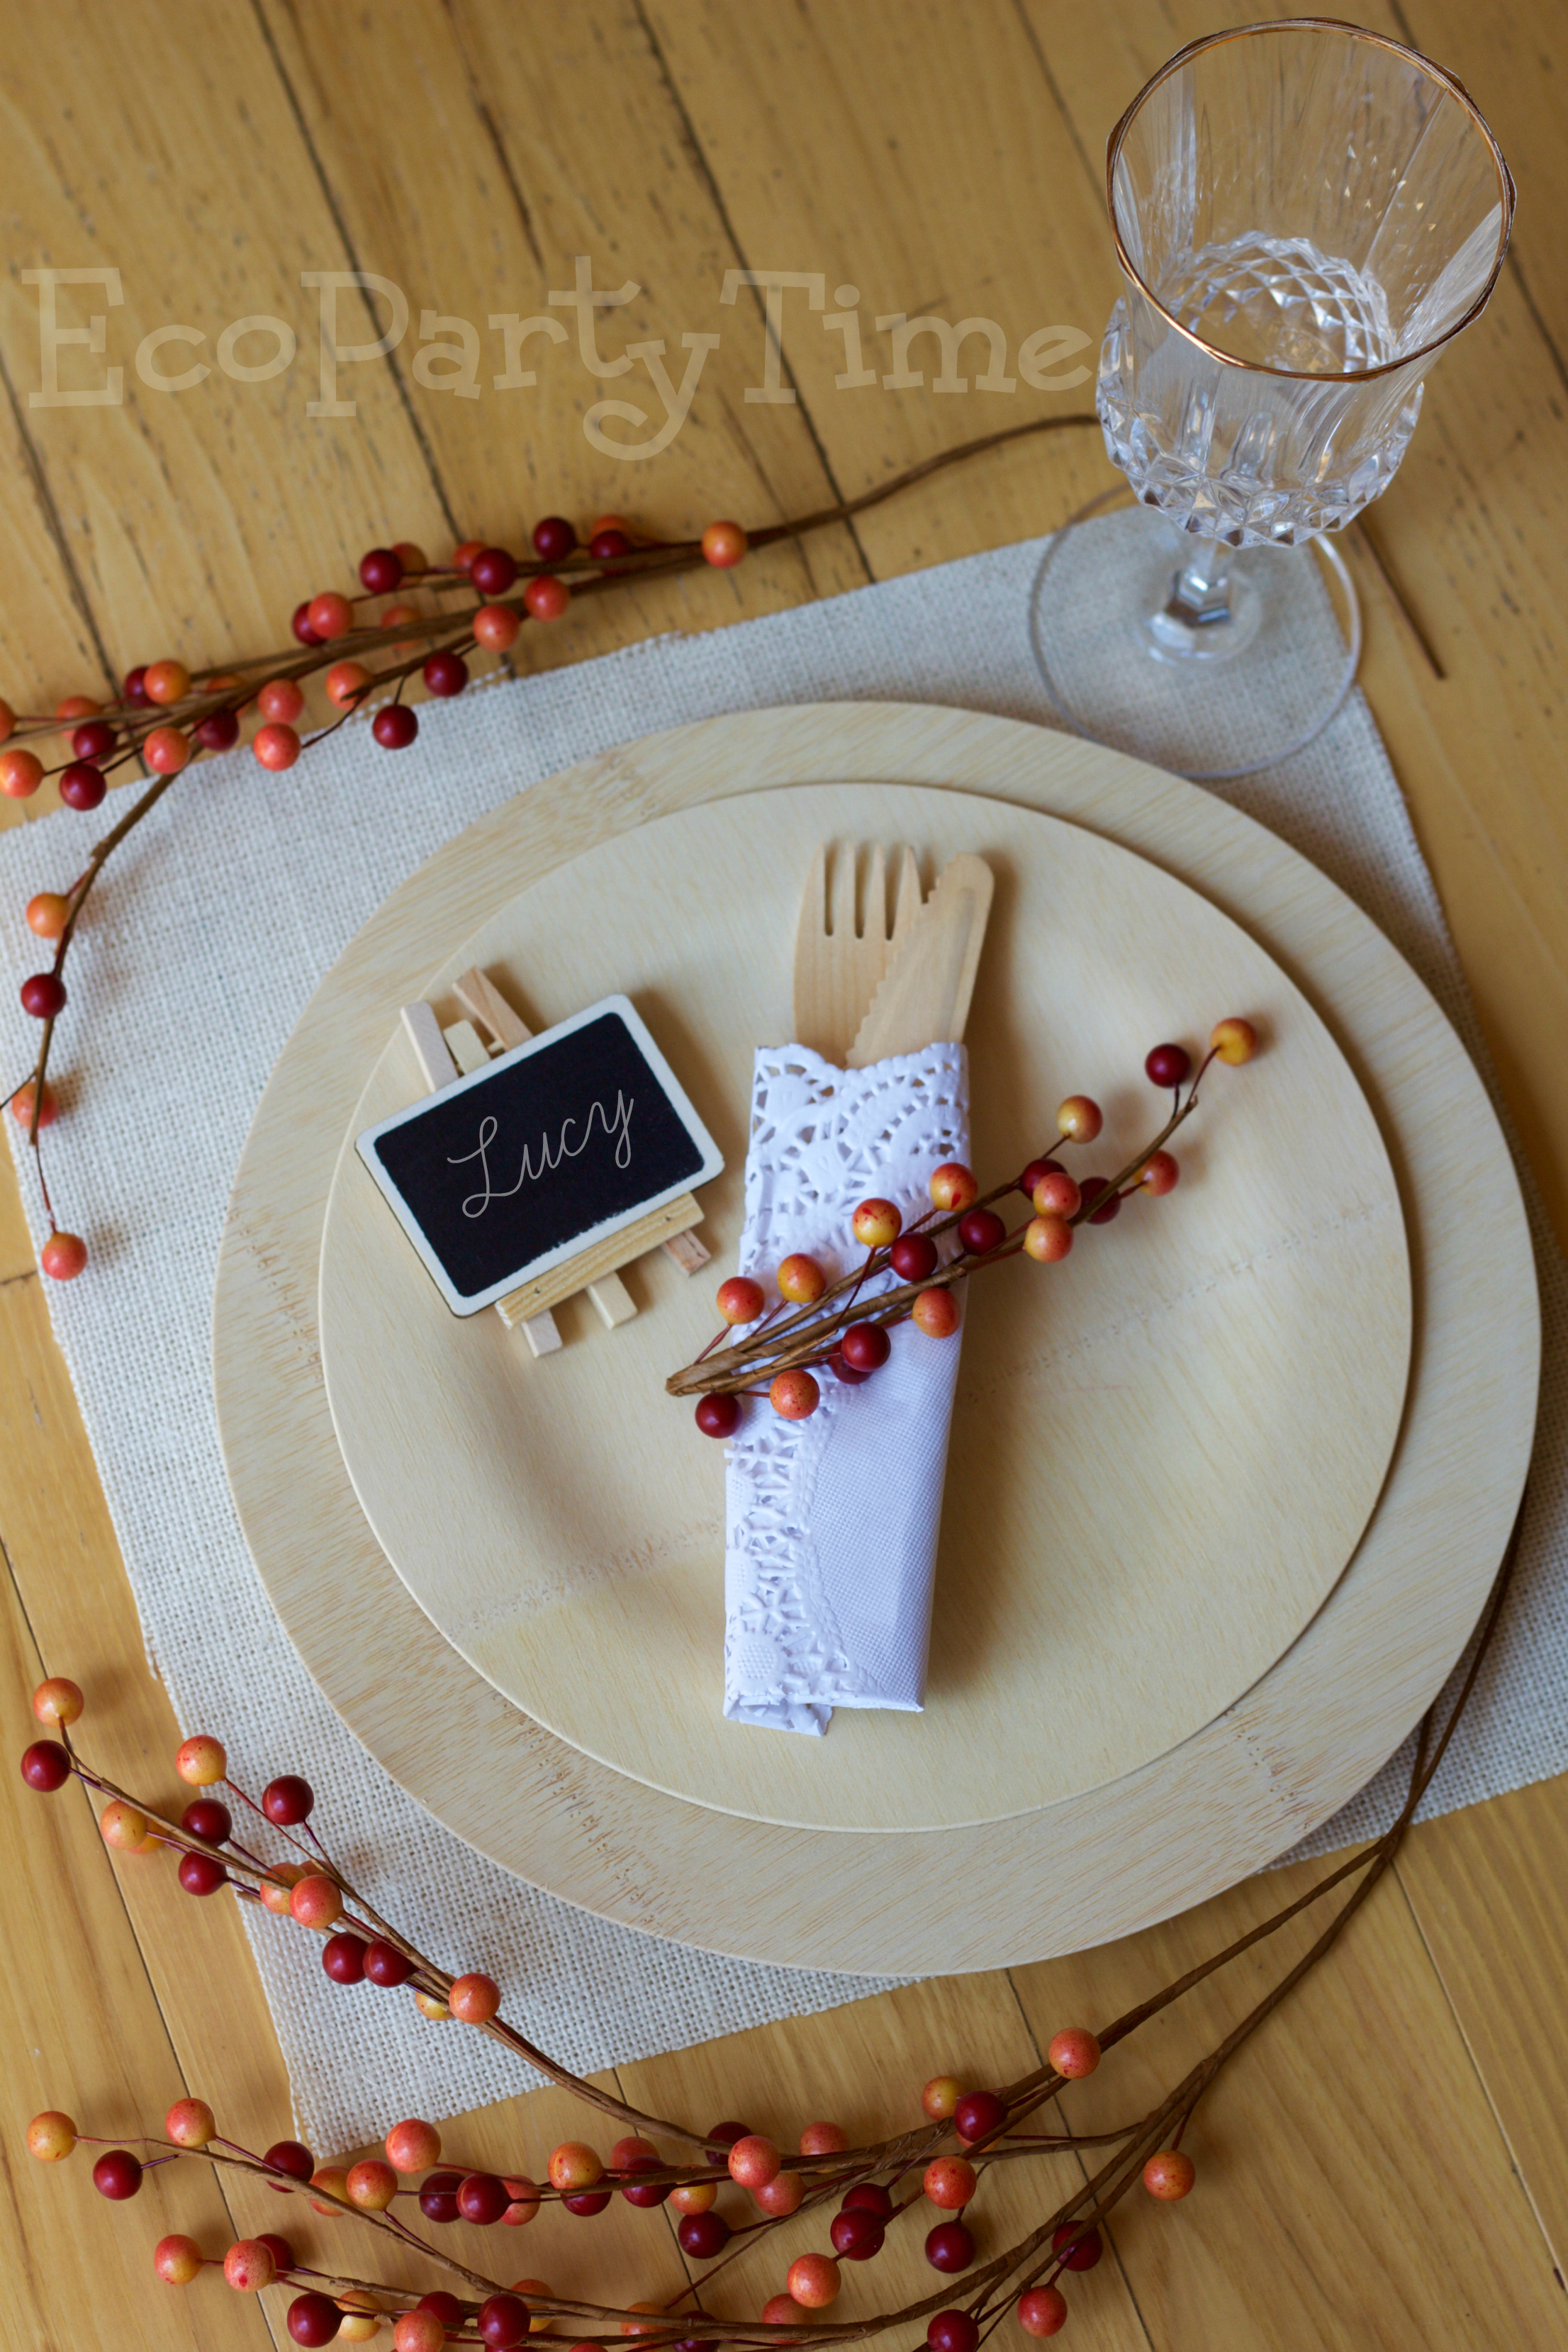 Ecopartytime: Eco-Friendly Fall Place Settings